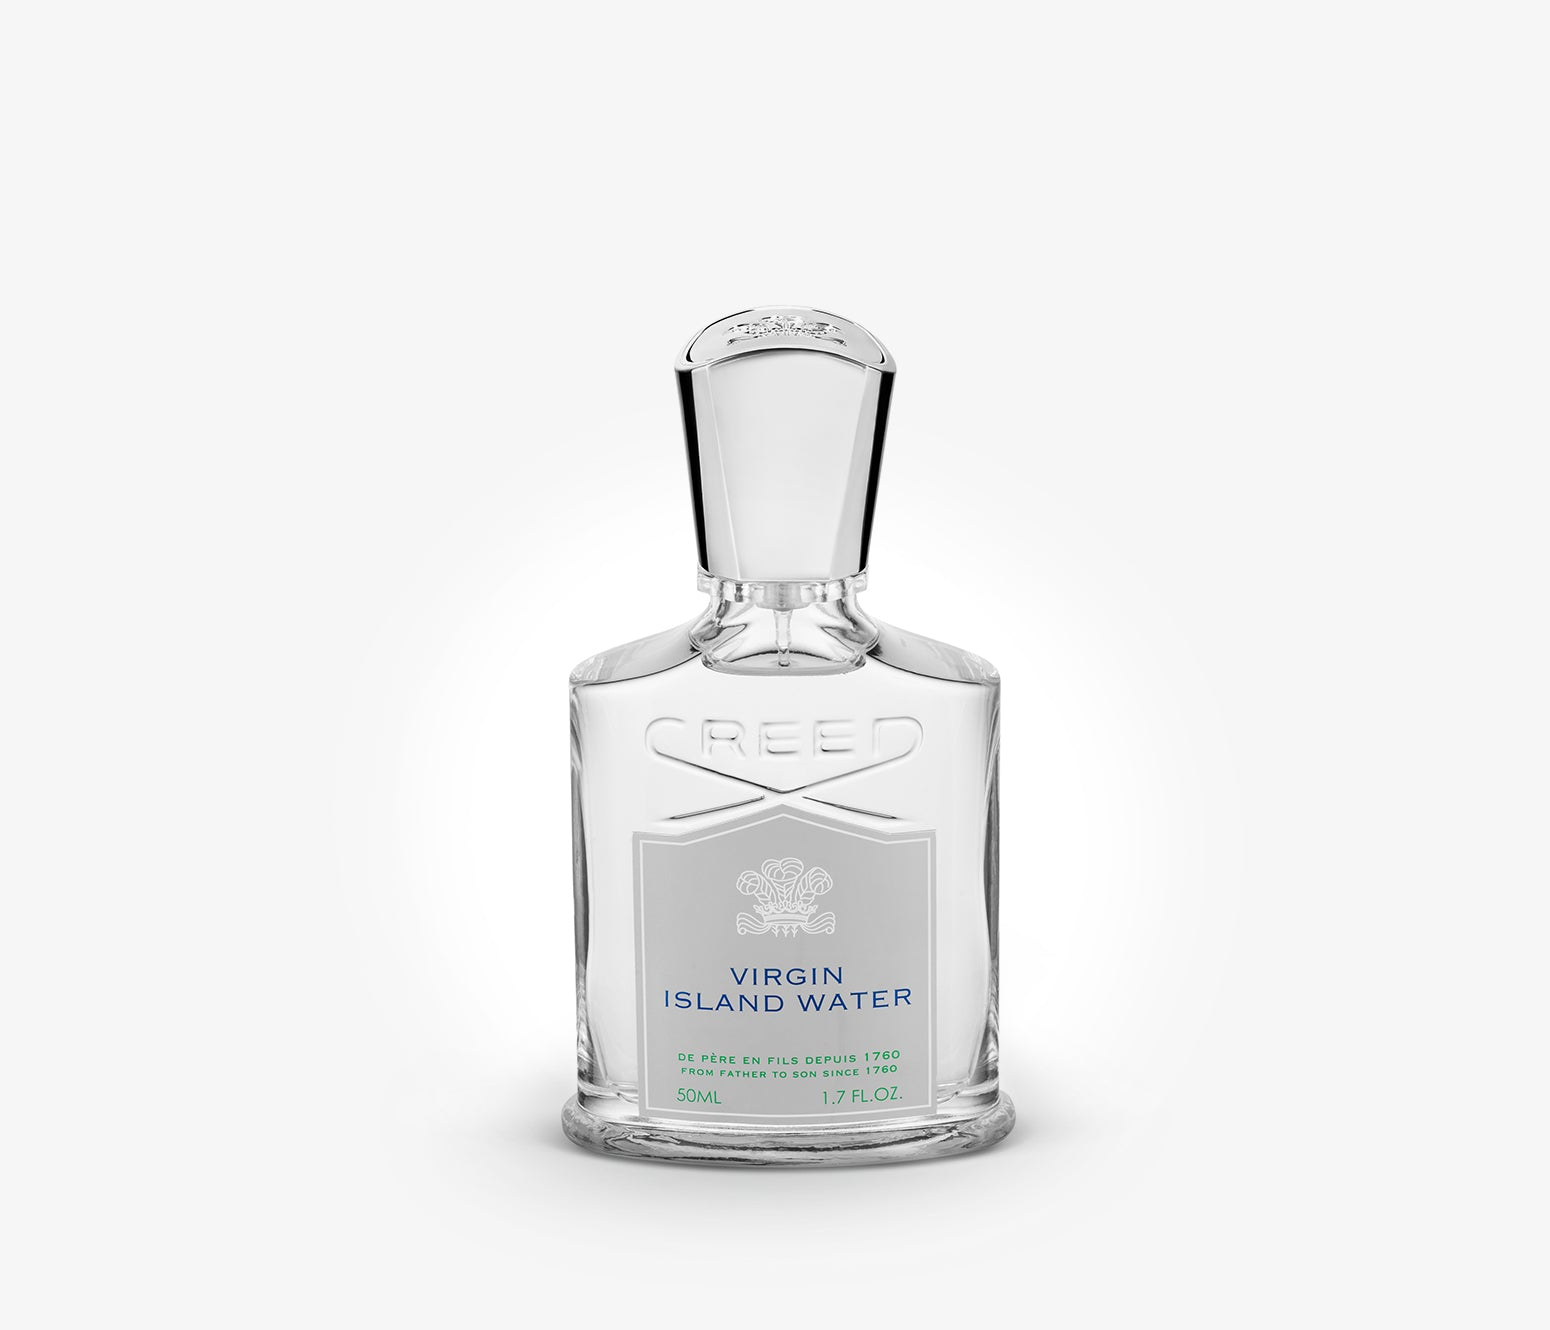 Creed - Virgin Island Water - 50ml - SXJ004 - Product Image - Fragrance - Les Senteurs